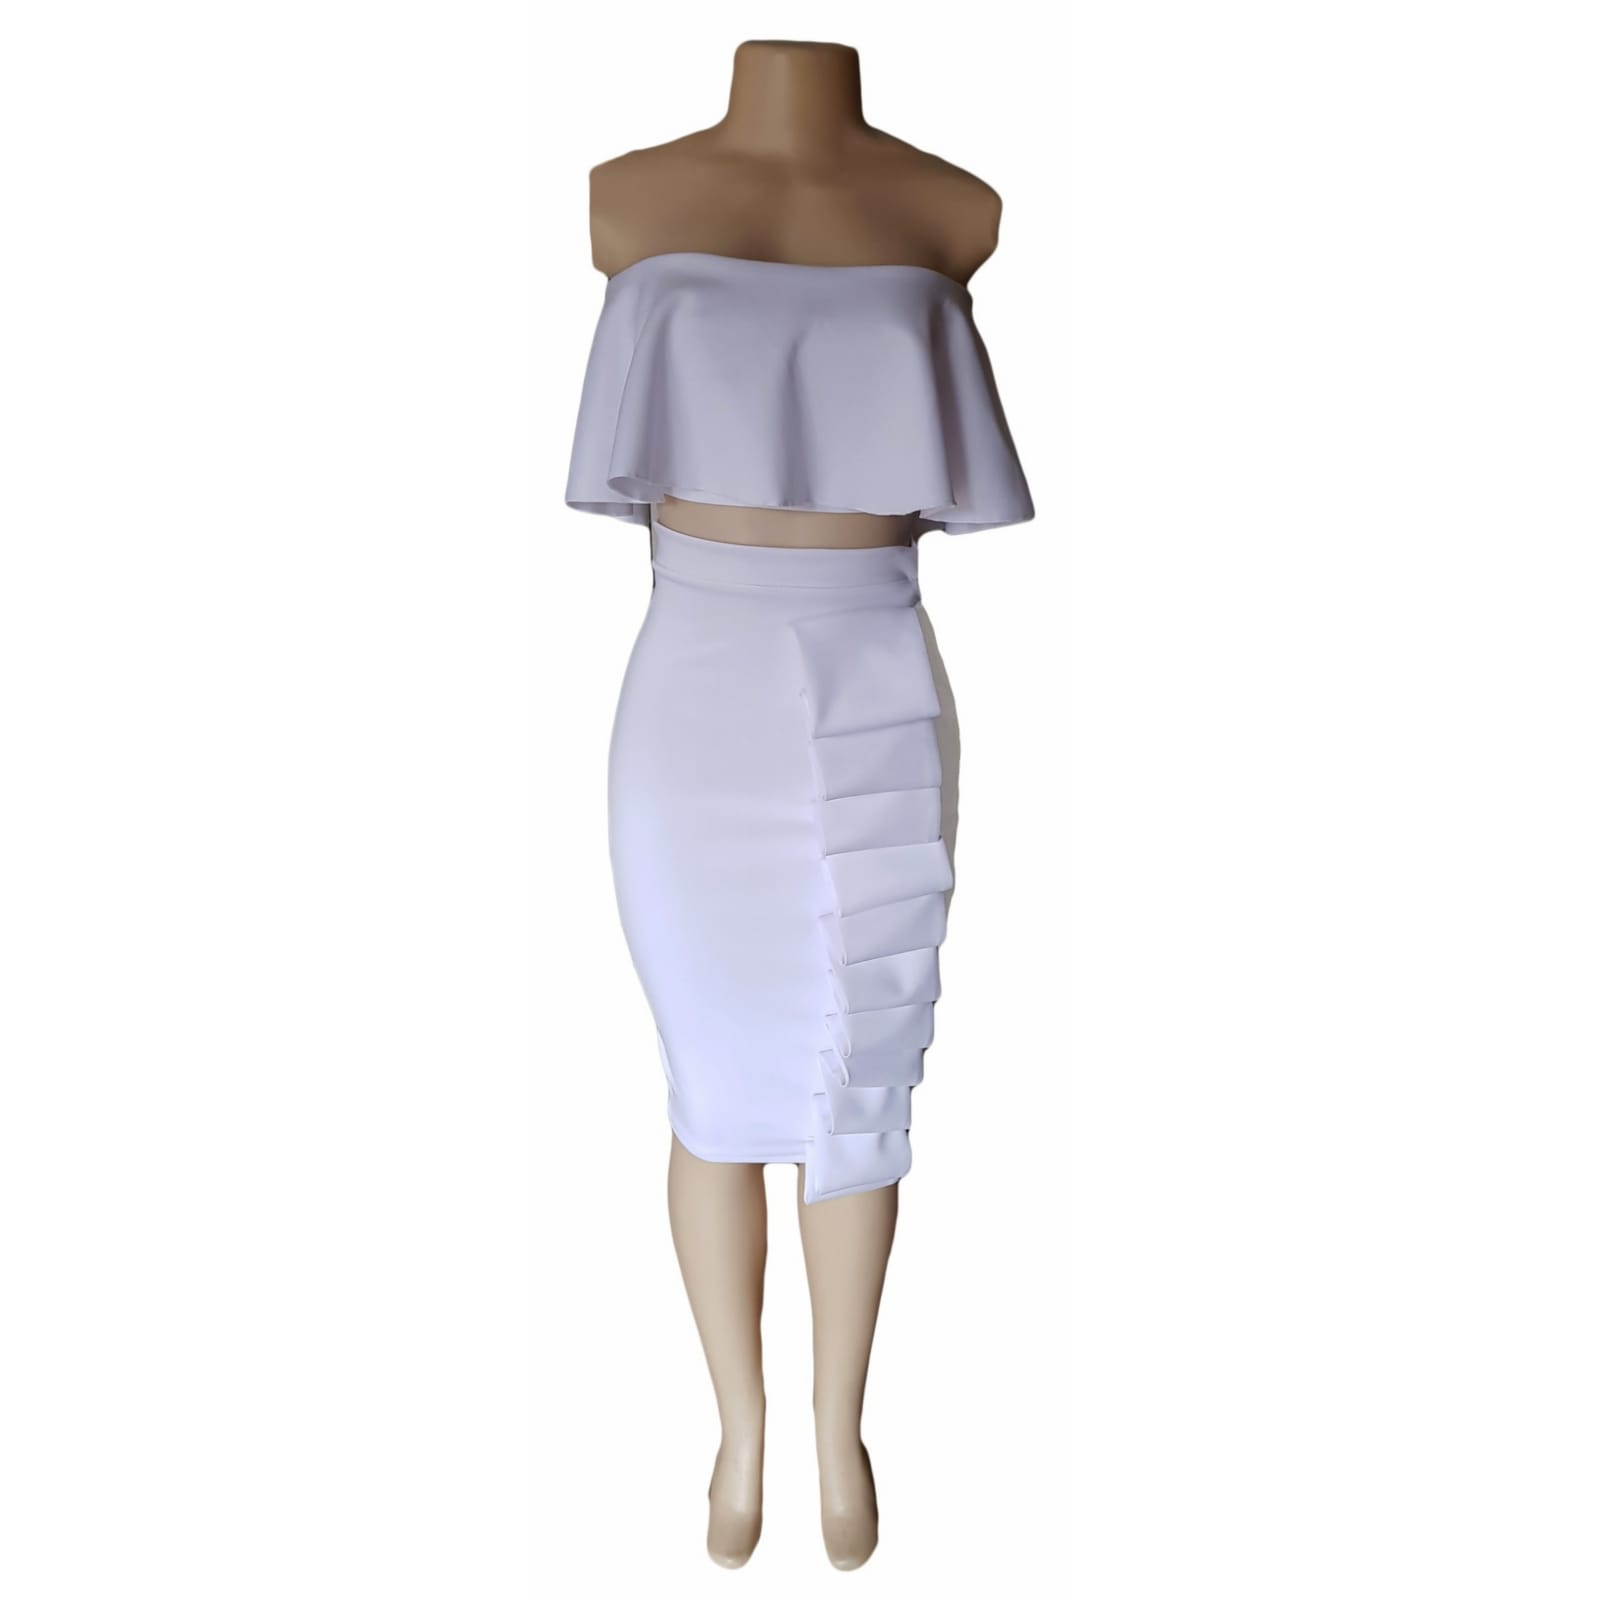 2 piece white smart casual wear 2 2 piece white smart casual wear. Crop boob tube frilled top with tight fitting below the knee skirt detailed with folds.